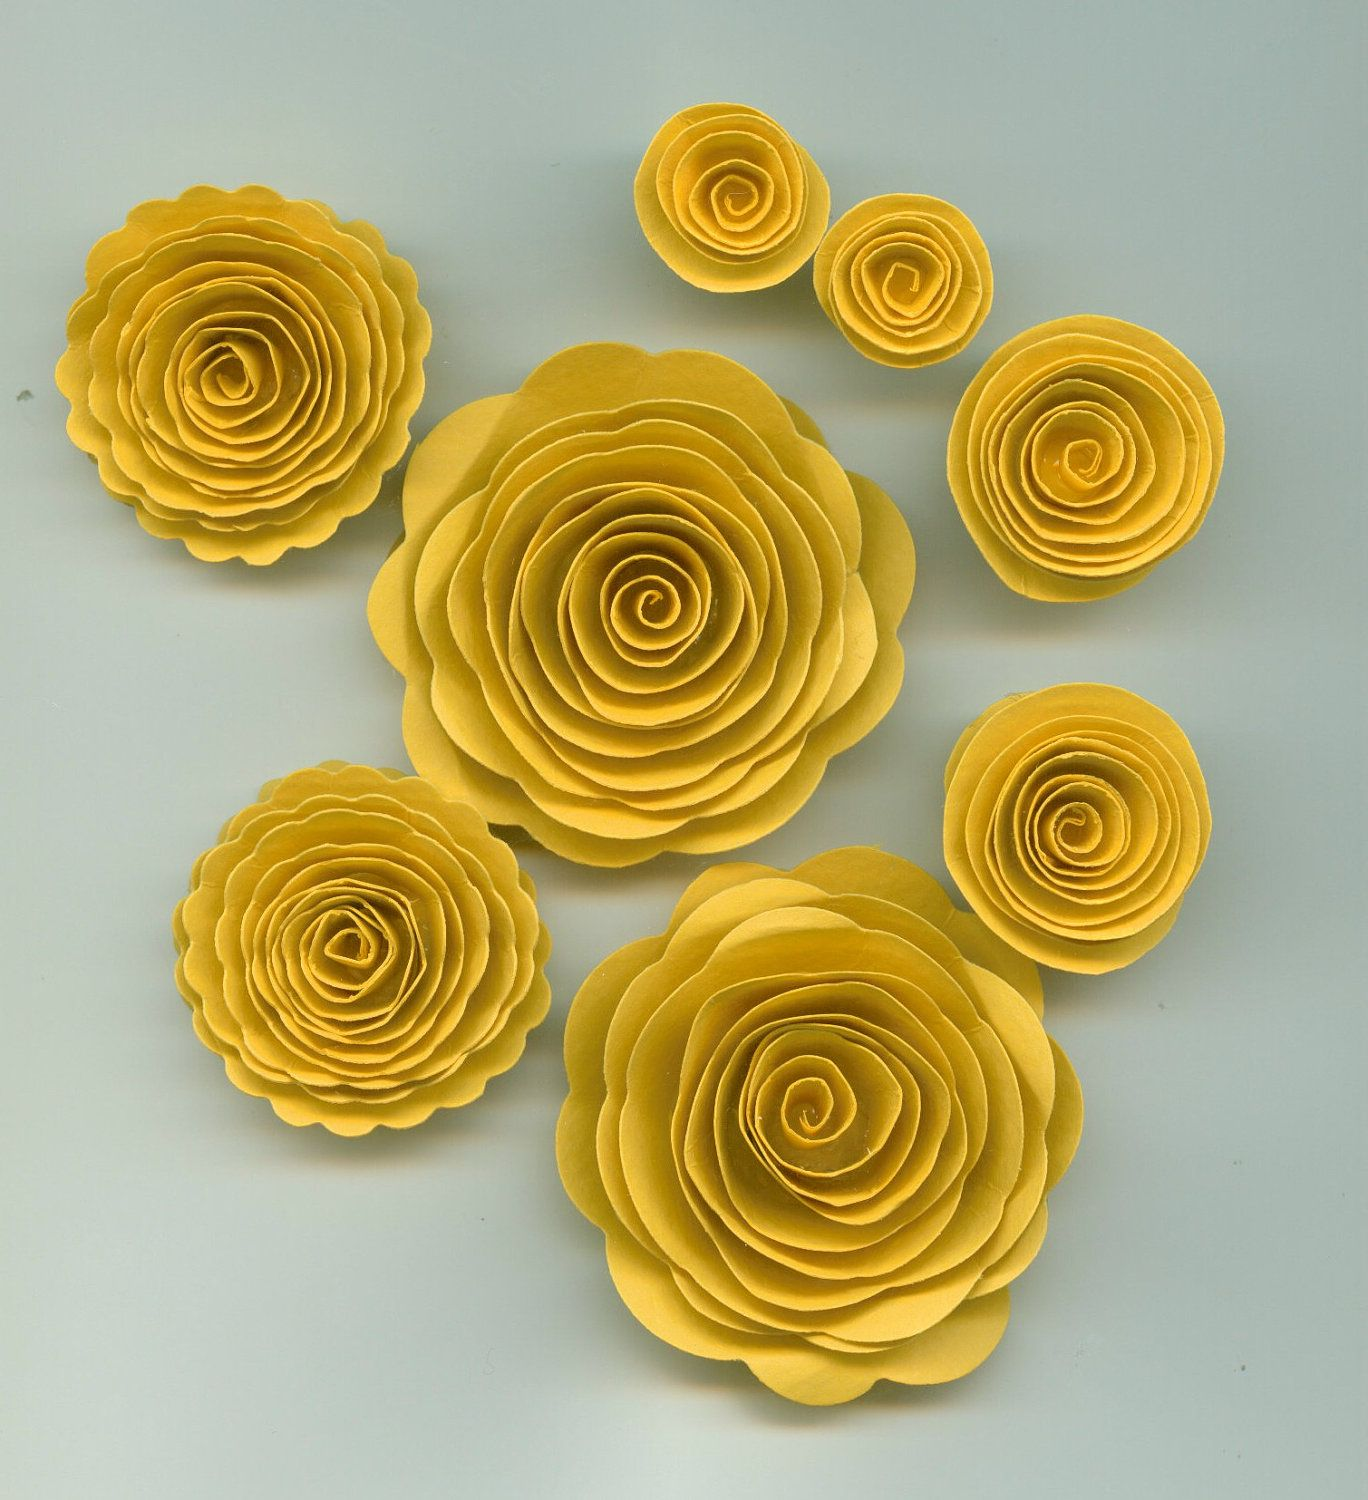 Sunflower Yellow Rose Spiral Paper Flowers 330 Via Etsy The